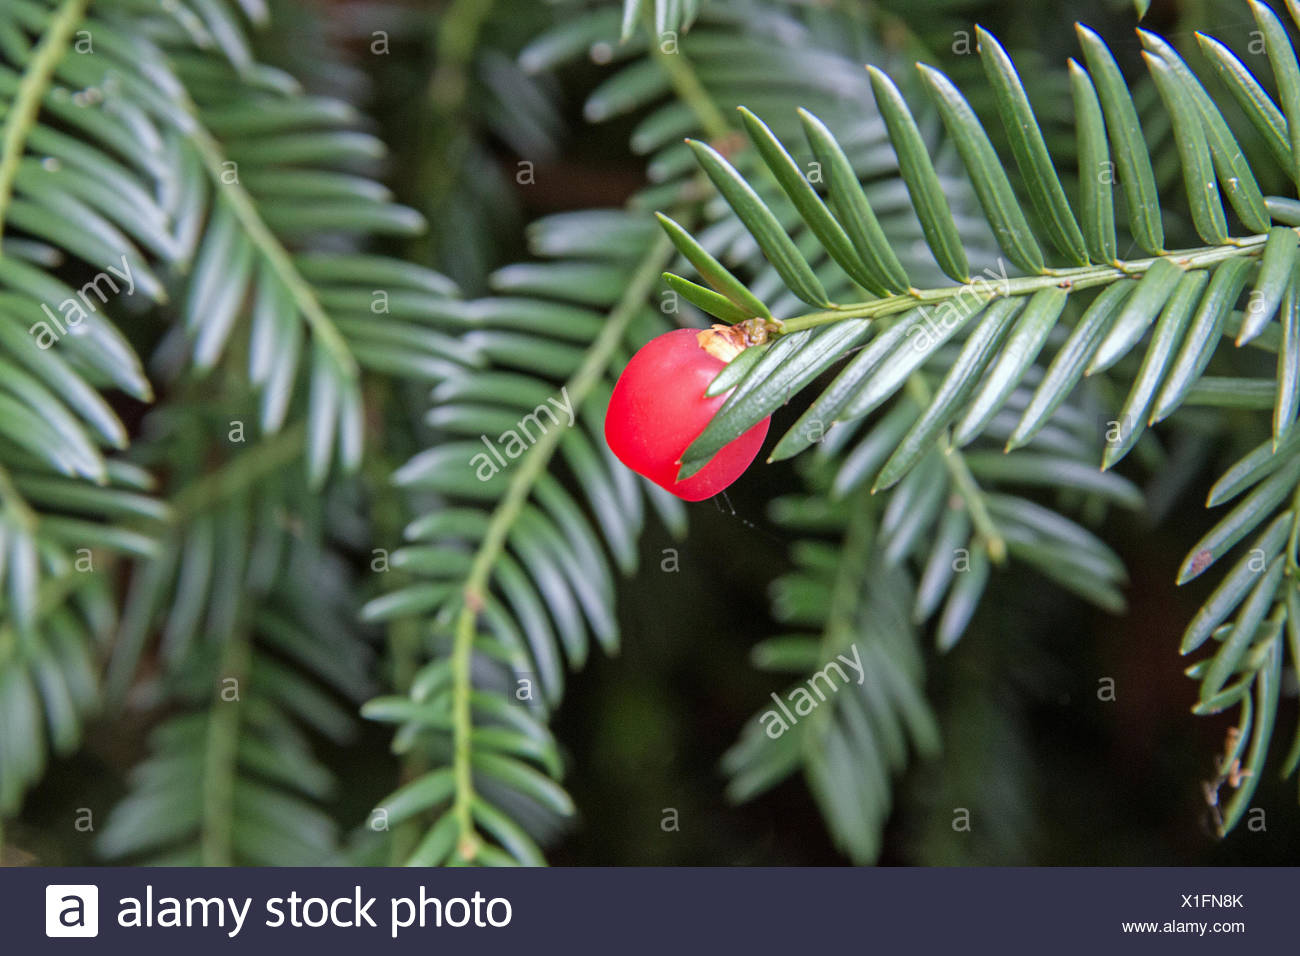 Yew branch with red seed coat - Stock Image